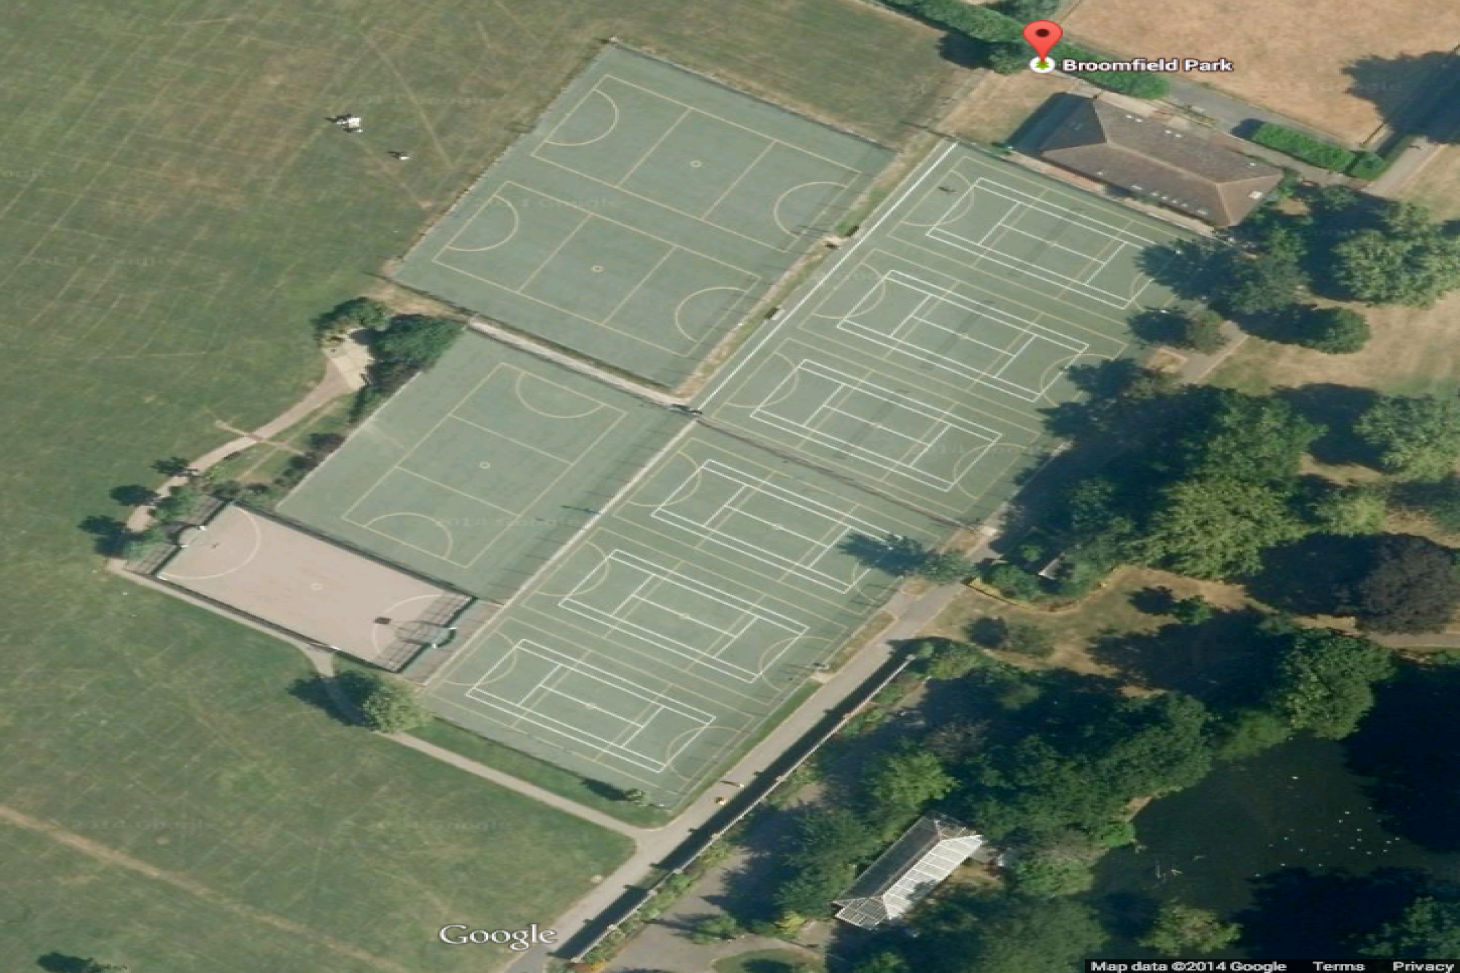 Broomfield Park Outdoor | Hard (macadam) tennis court